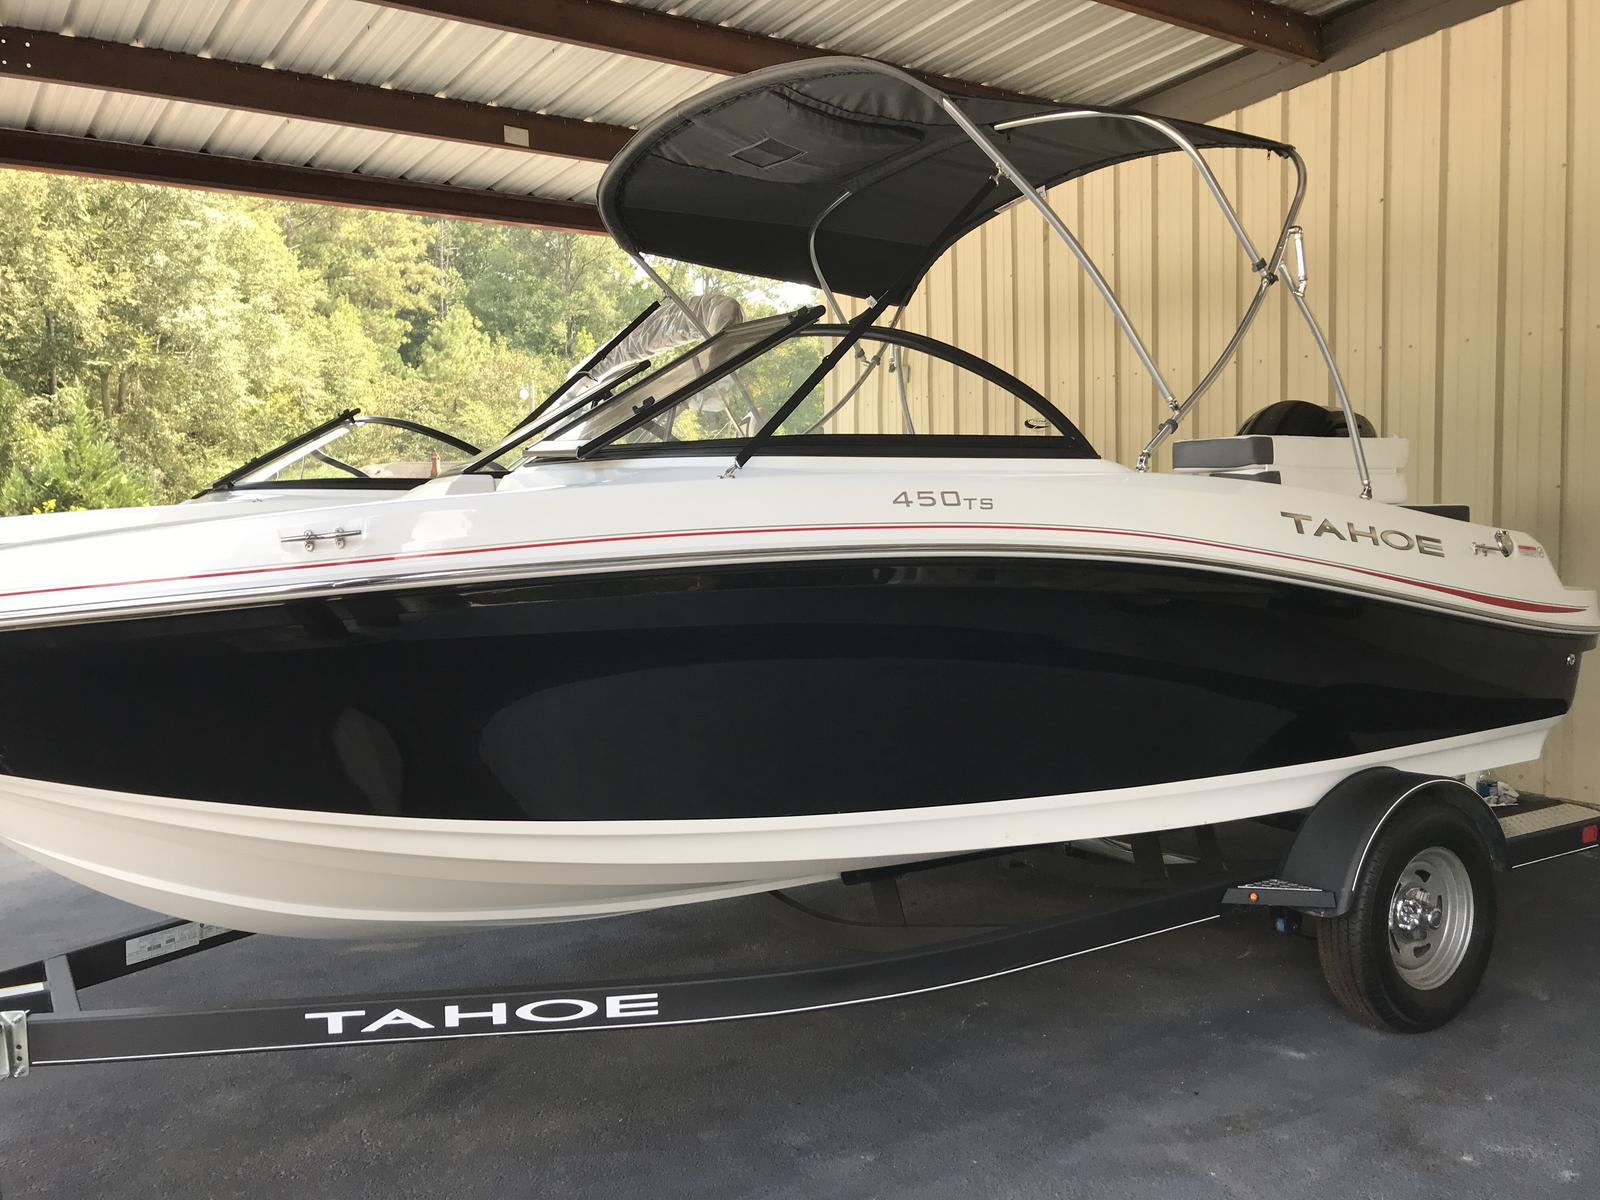 2019 Tahoe boat for sale, model of the boat is 450 TS & Image # 1 of 24